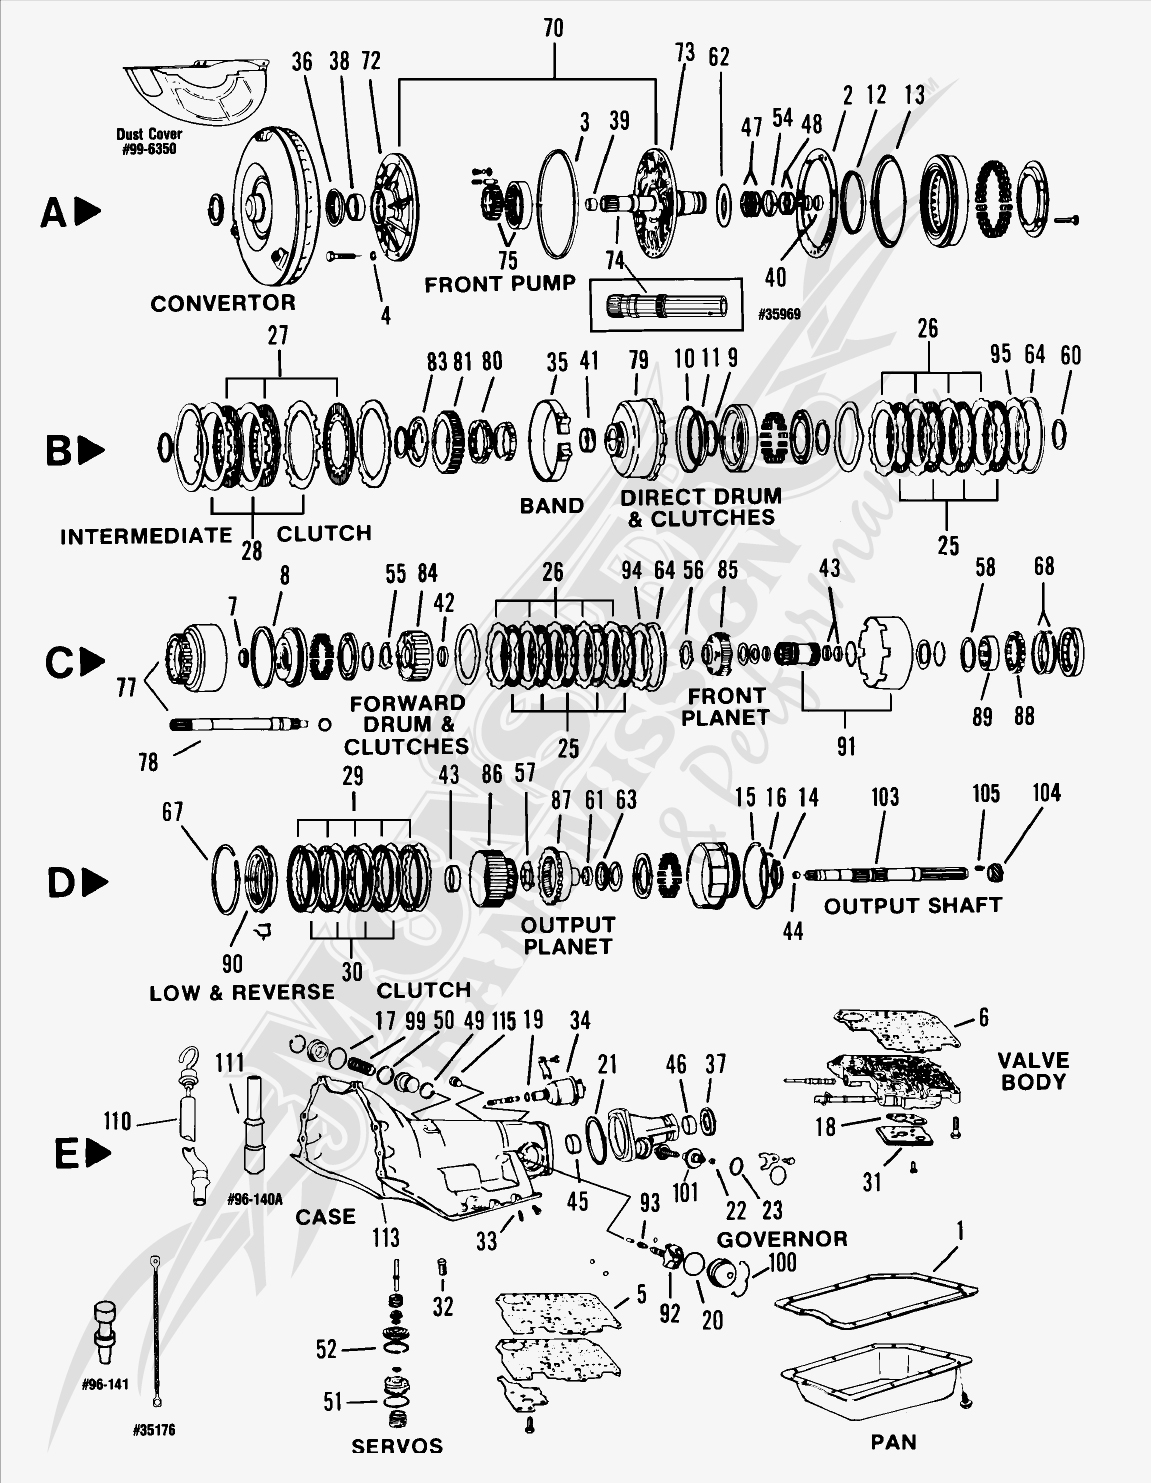 Diagram Dodge Dakota Automatic Transmission